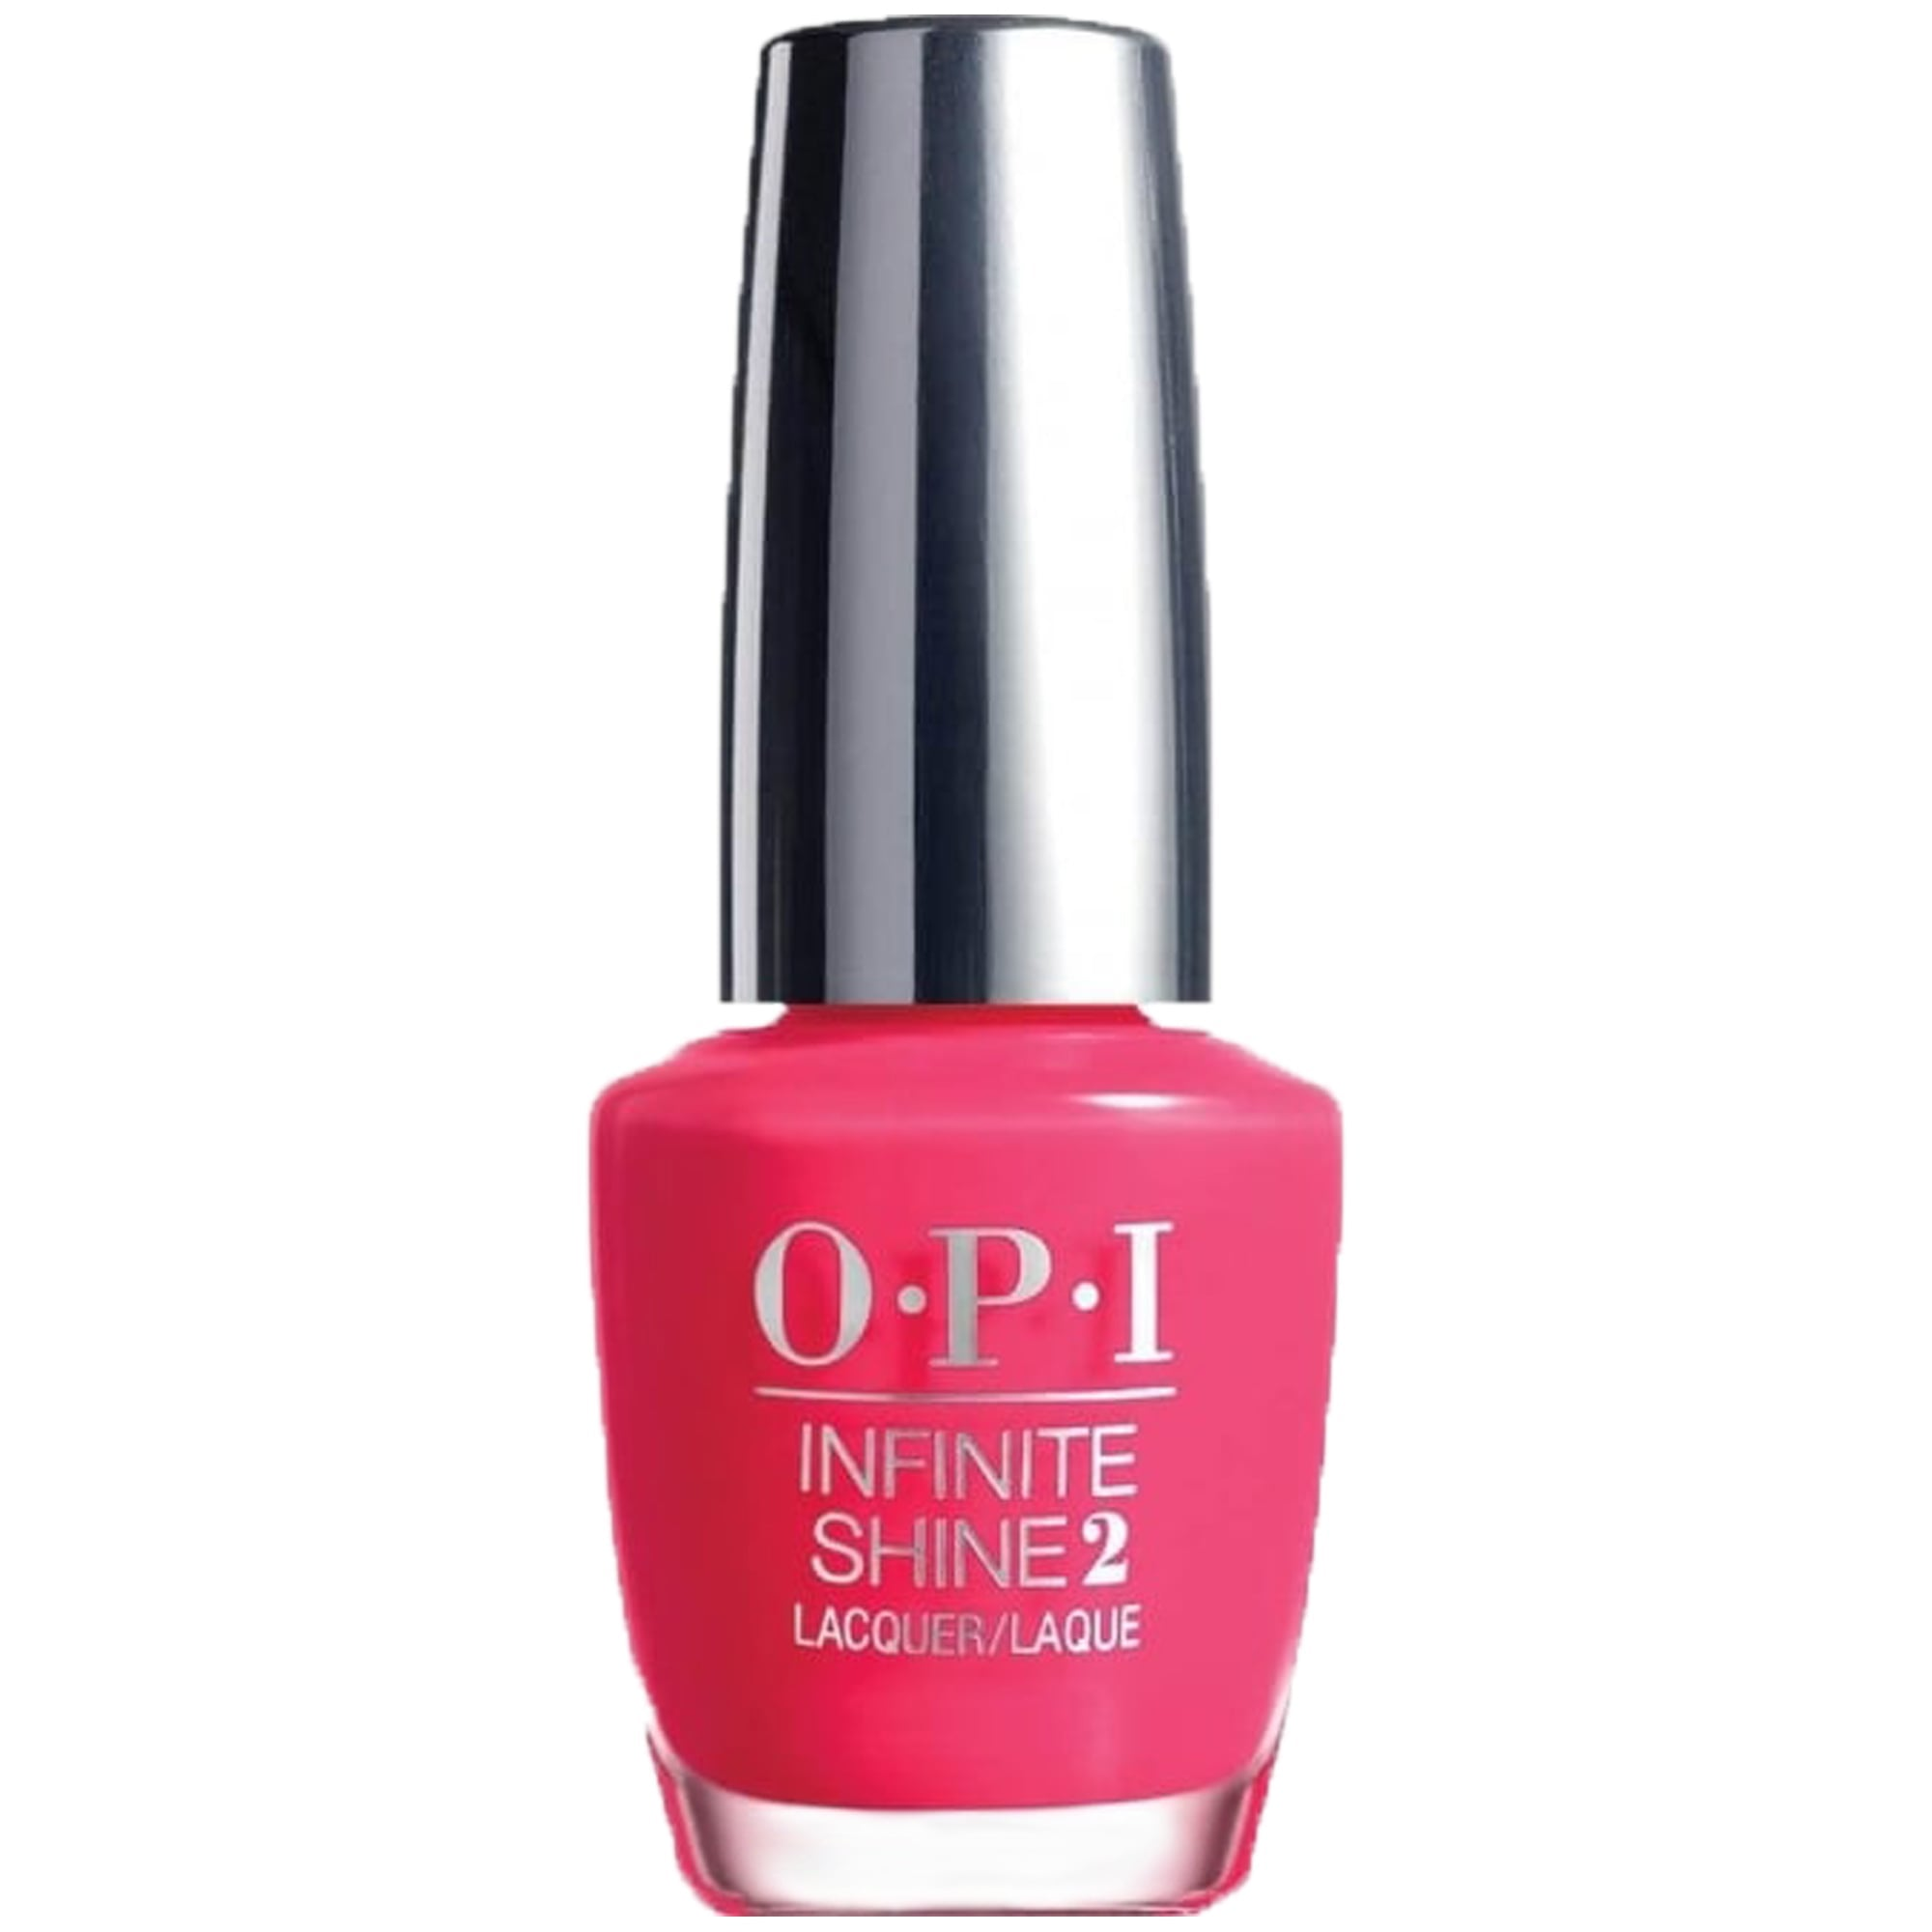 From Here To Eternity-OPI Infinite Shine-UK-Wholesaler-Supplier-queenofnailscouk